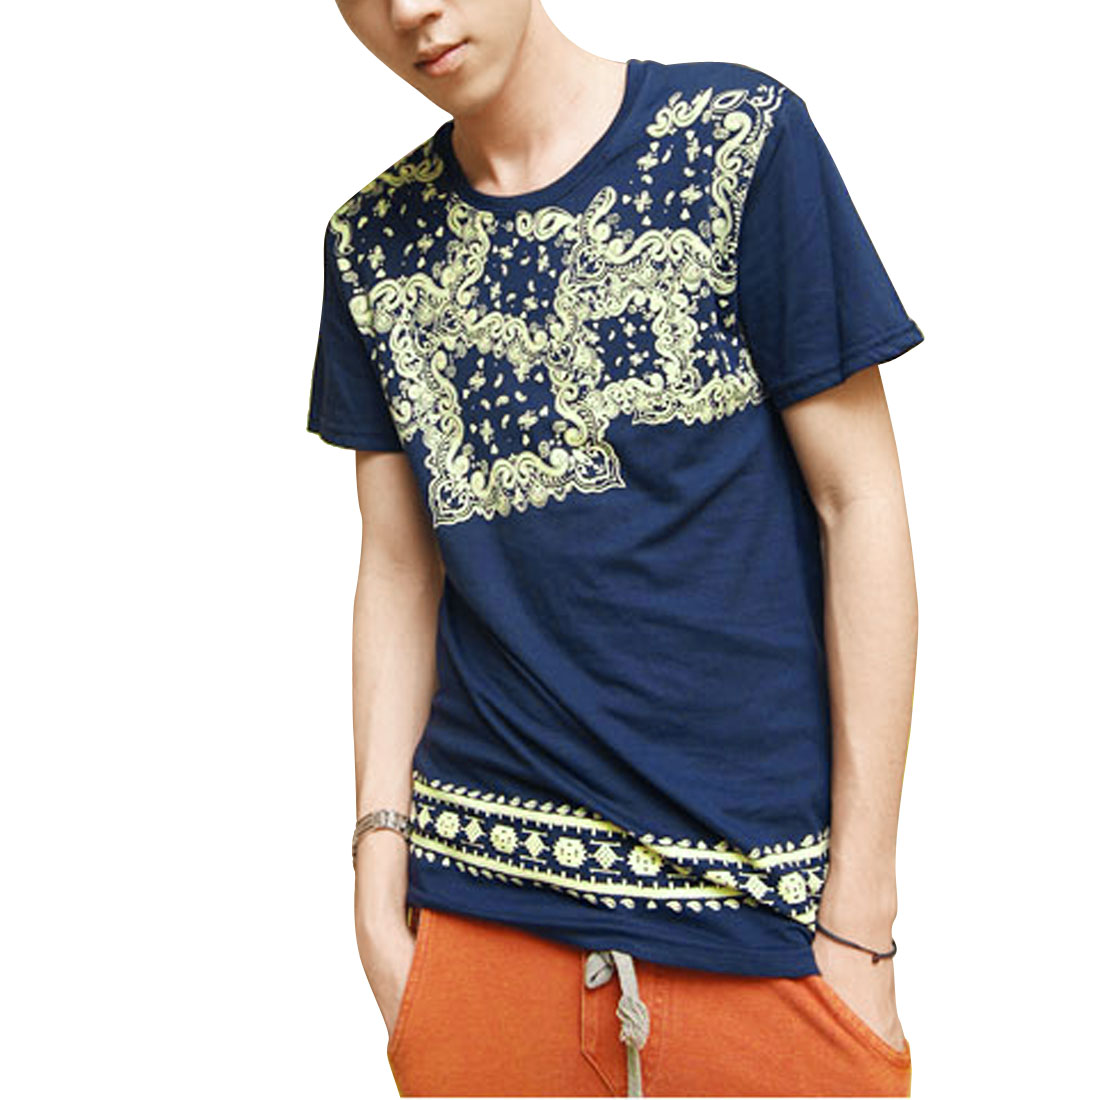 Round Neck Paisley Pattern T-Shirt Top Steel Blue S for Men